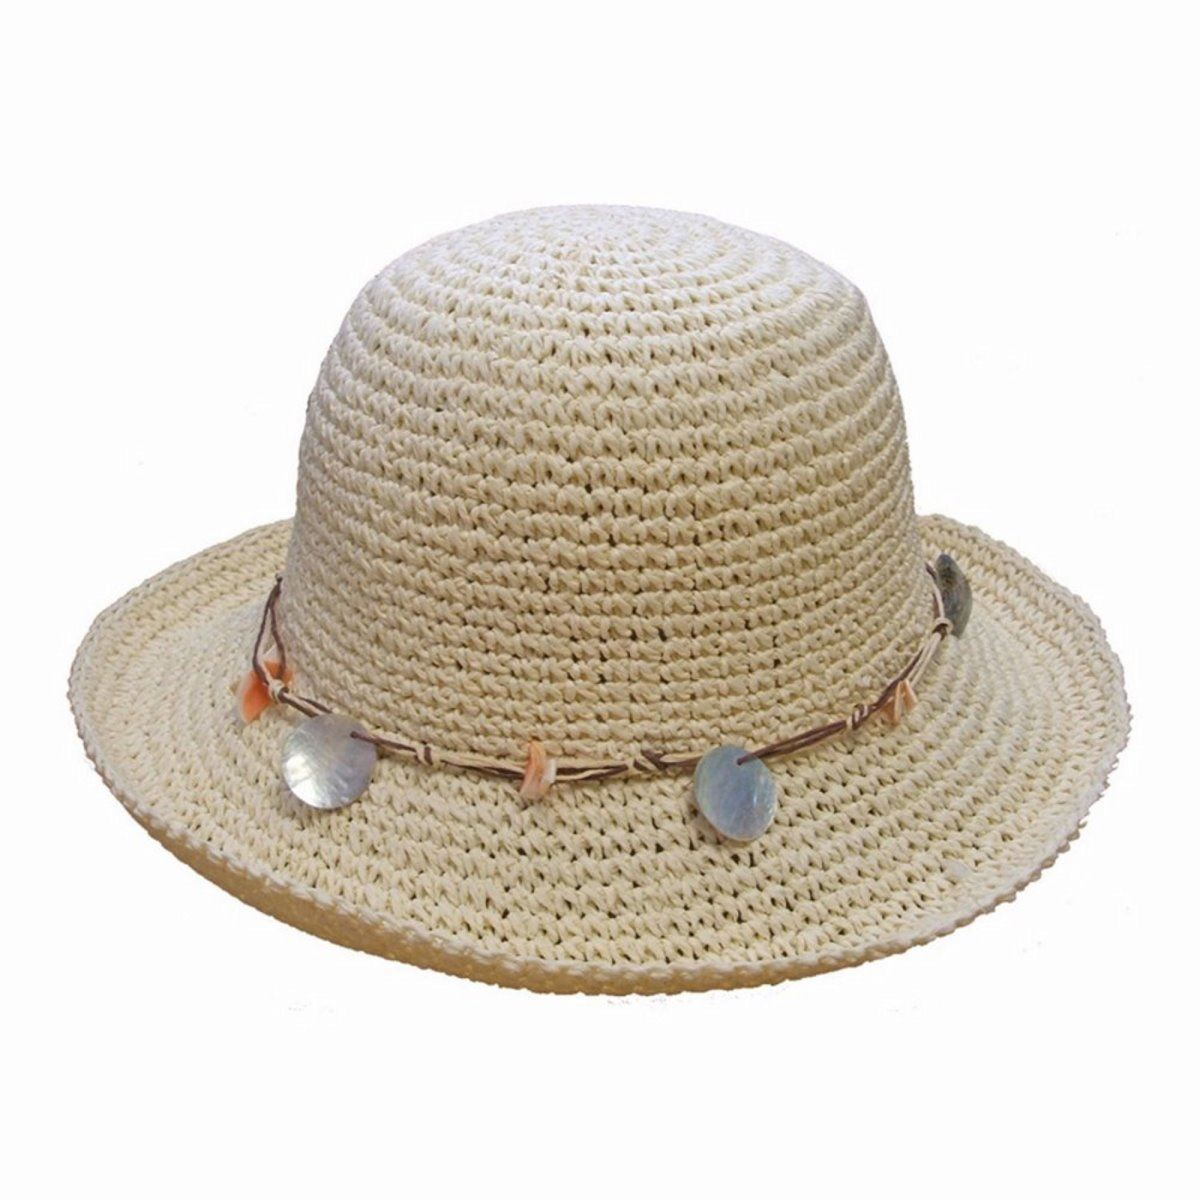 floppy straw hat crushable packable summer sun